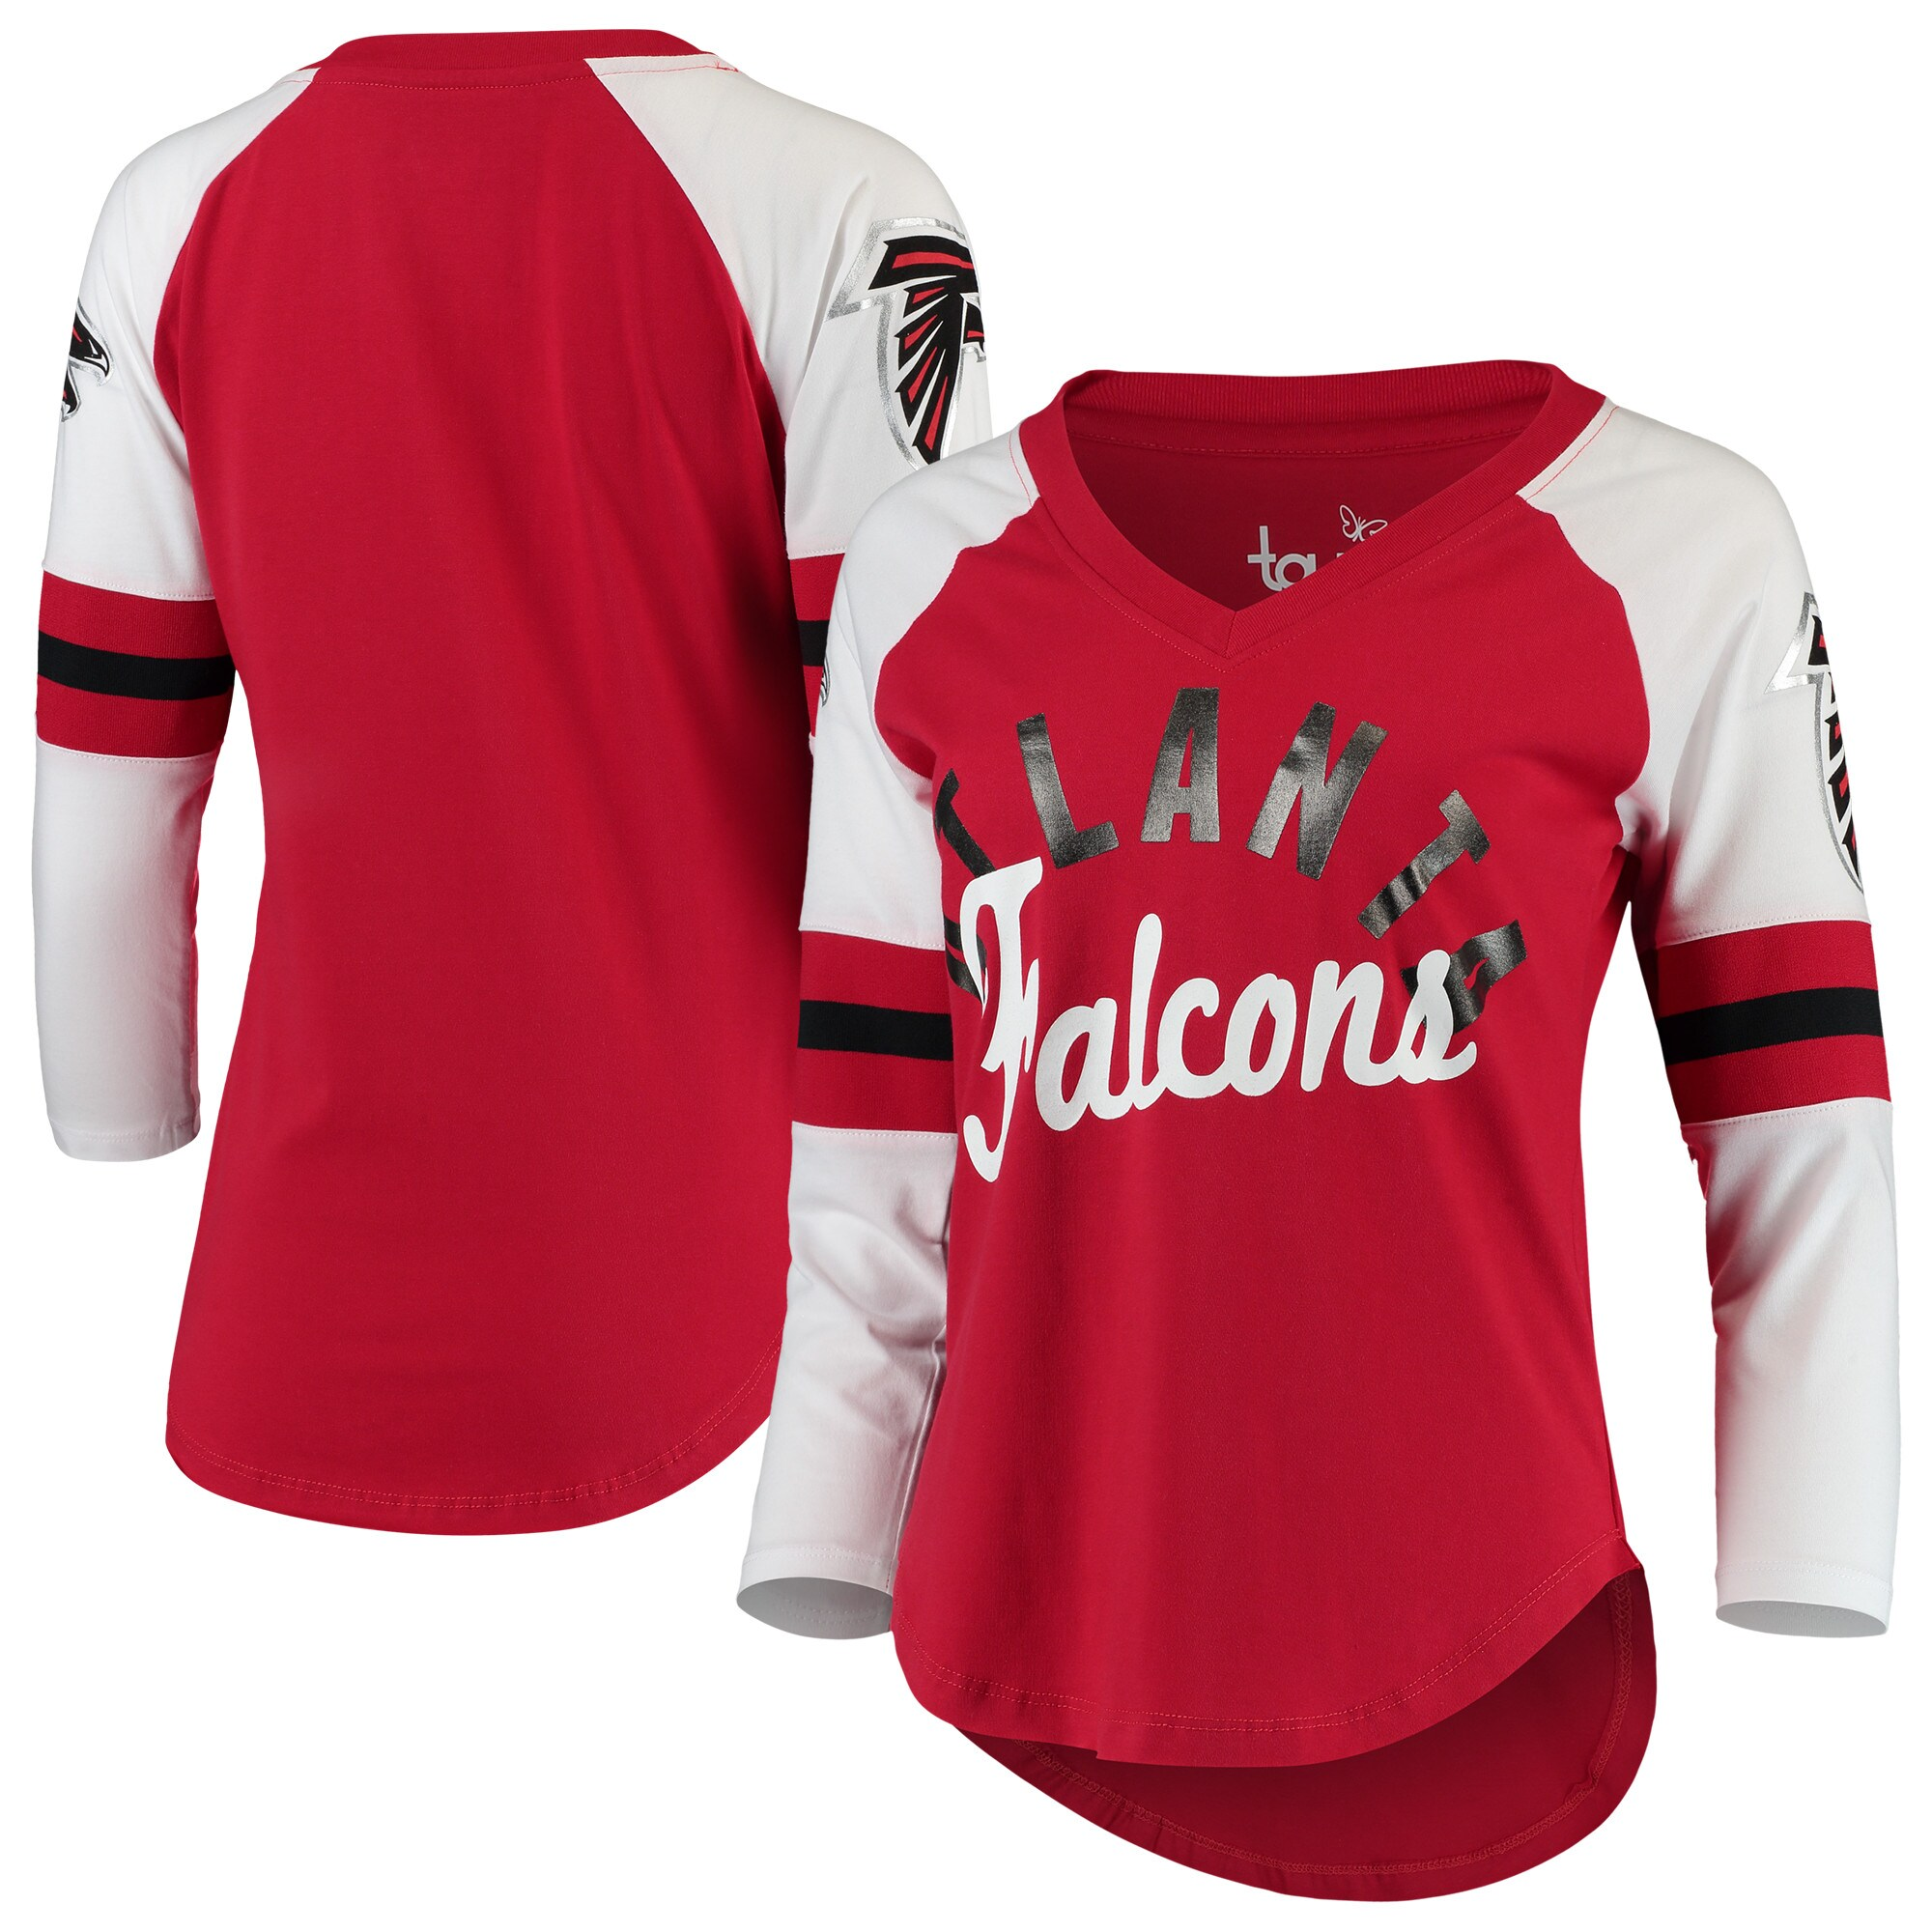 Atlanta Falcons Touch by Alyssa Milano Women's Reflex 3/4-Sleeve Raglan V-Neck T-Shirt - Red/White